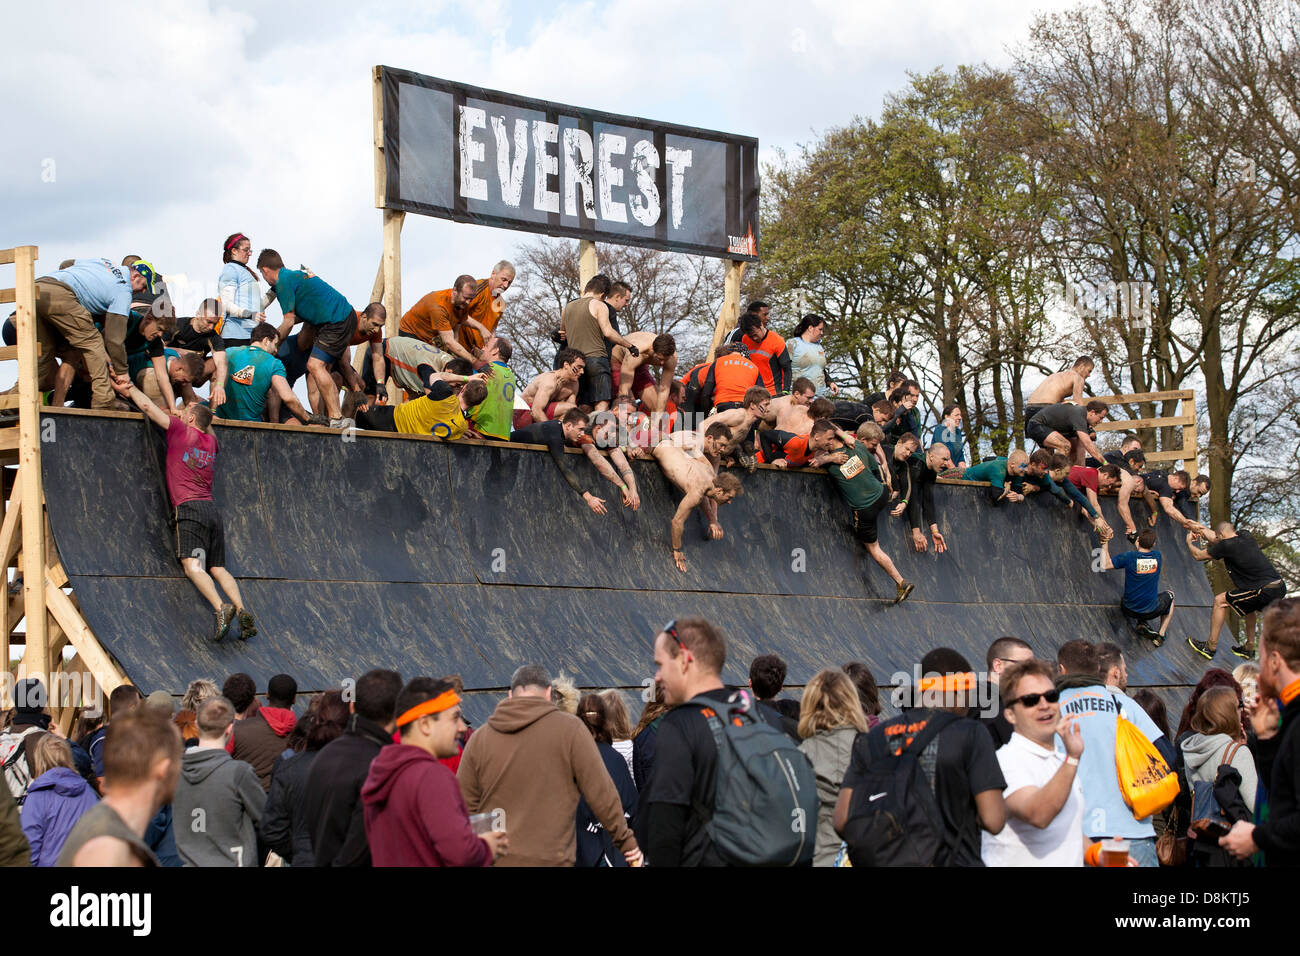 Participants at Tough Mudder 2013 (an endurance event) in Kettering/North East London - Stock Image